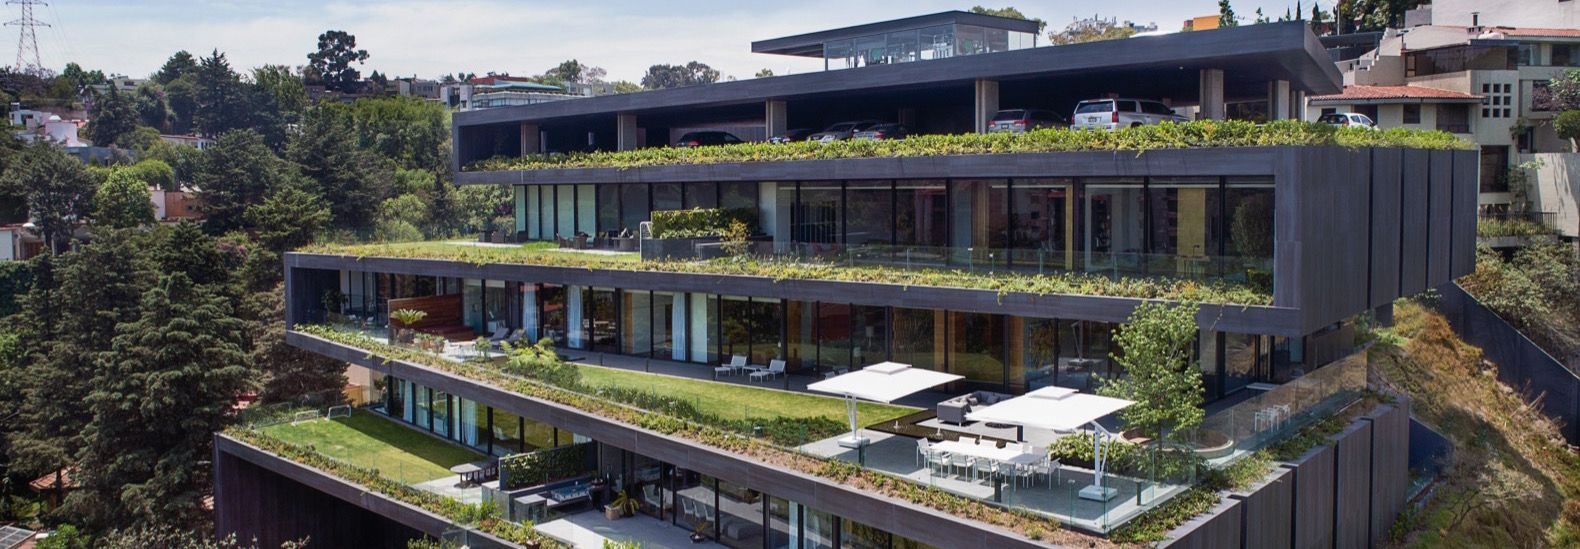 Zigzagging green terraces make up a luxury residential